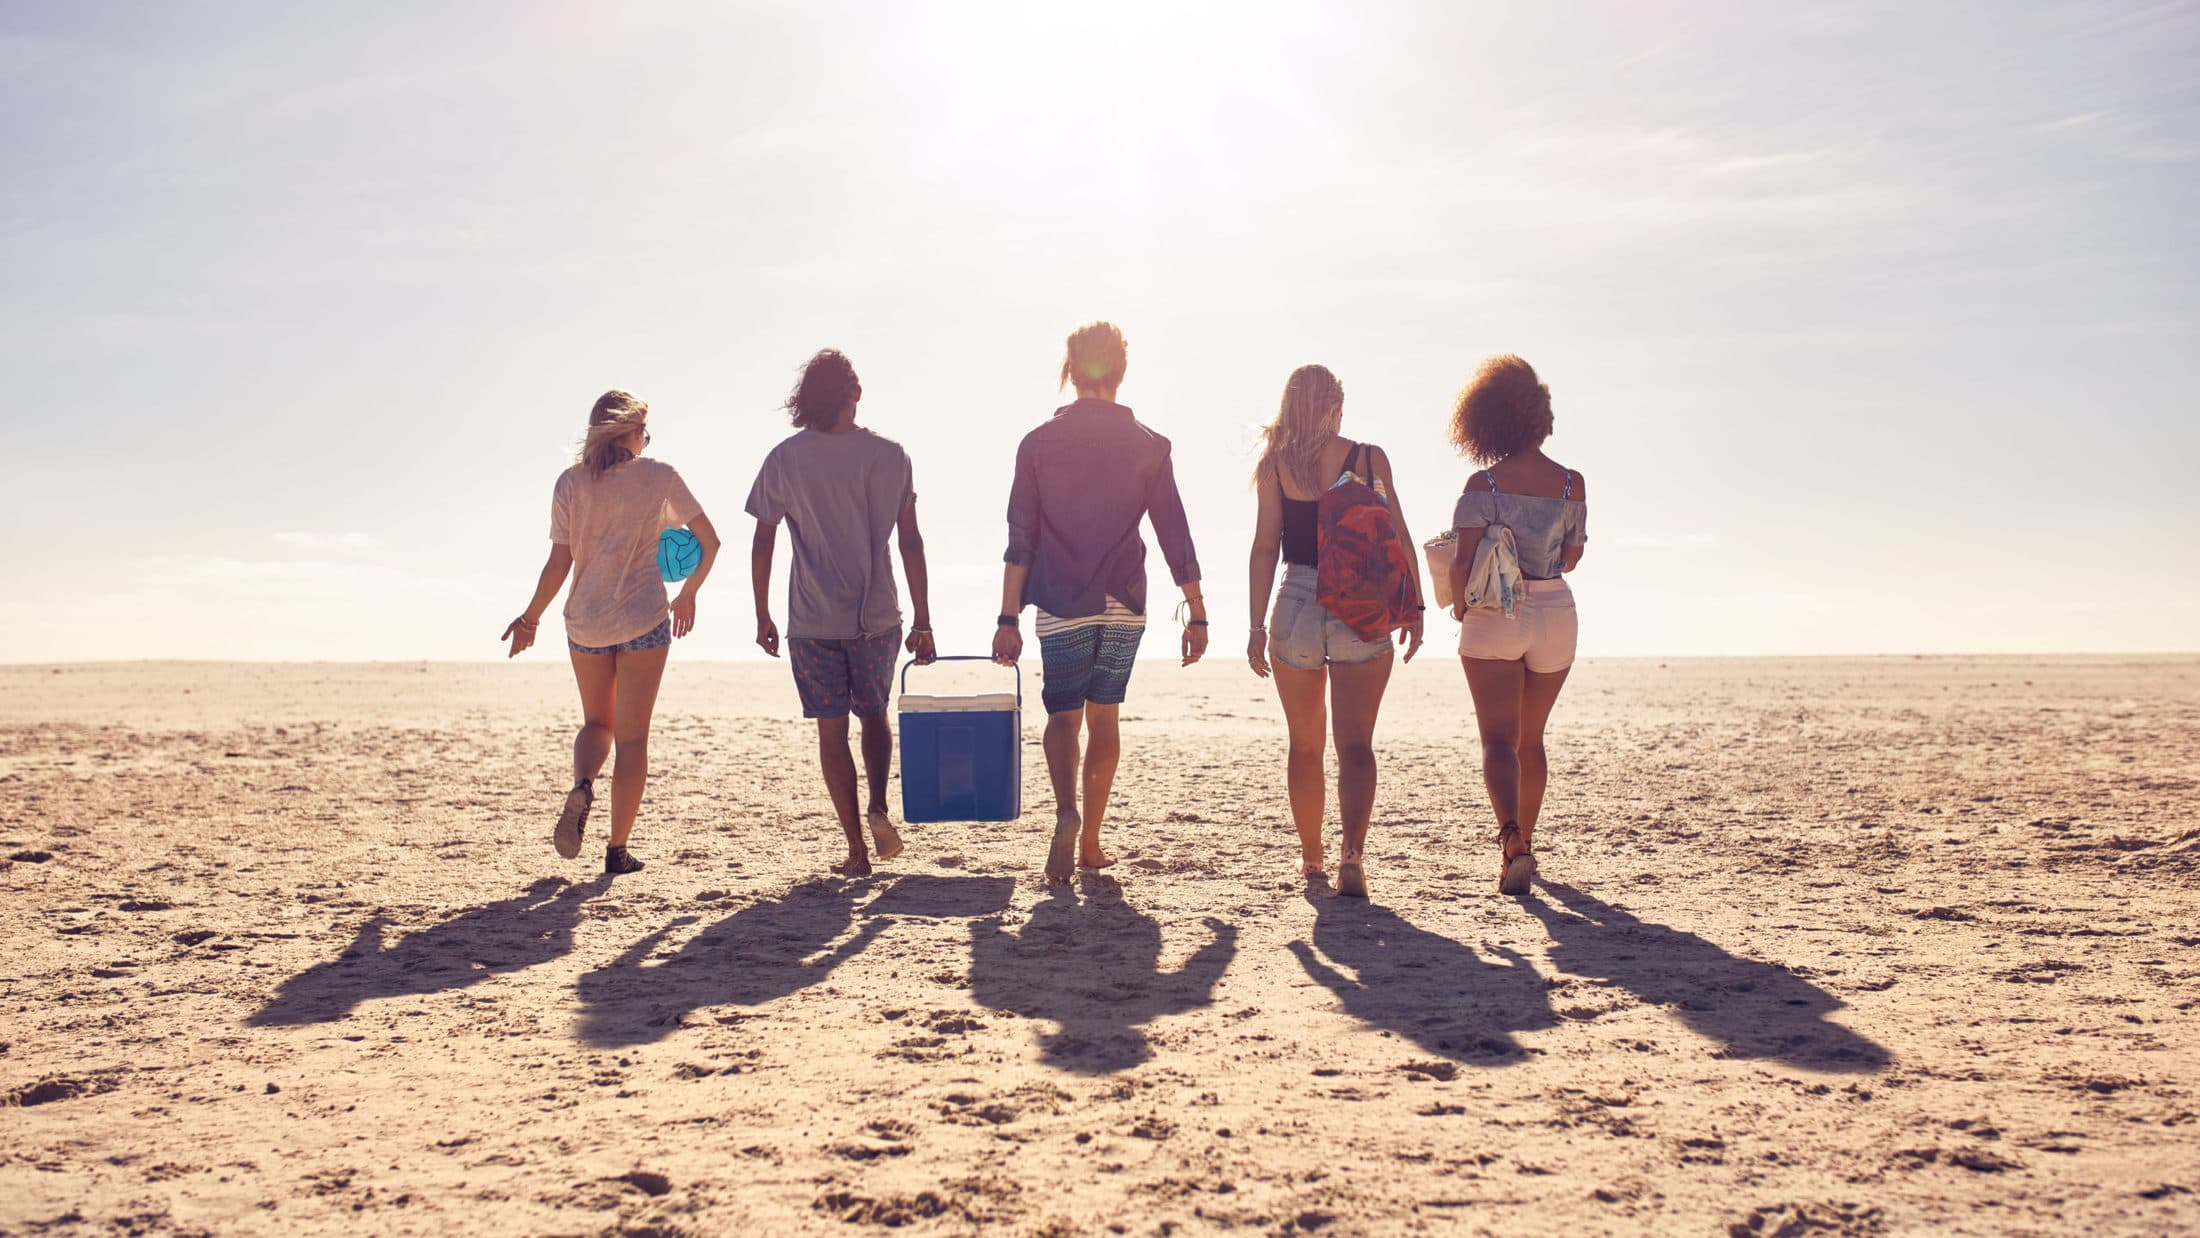 friends walking on the beach carrying a cooler box PCVR2Z5 scaled